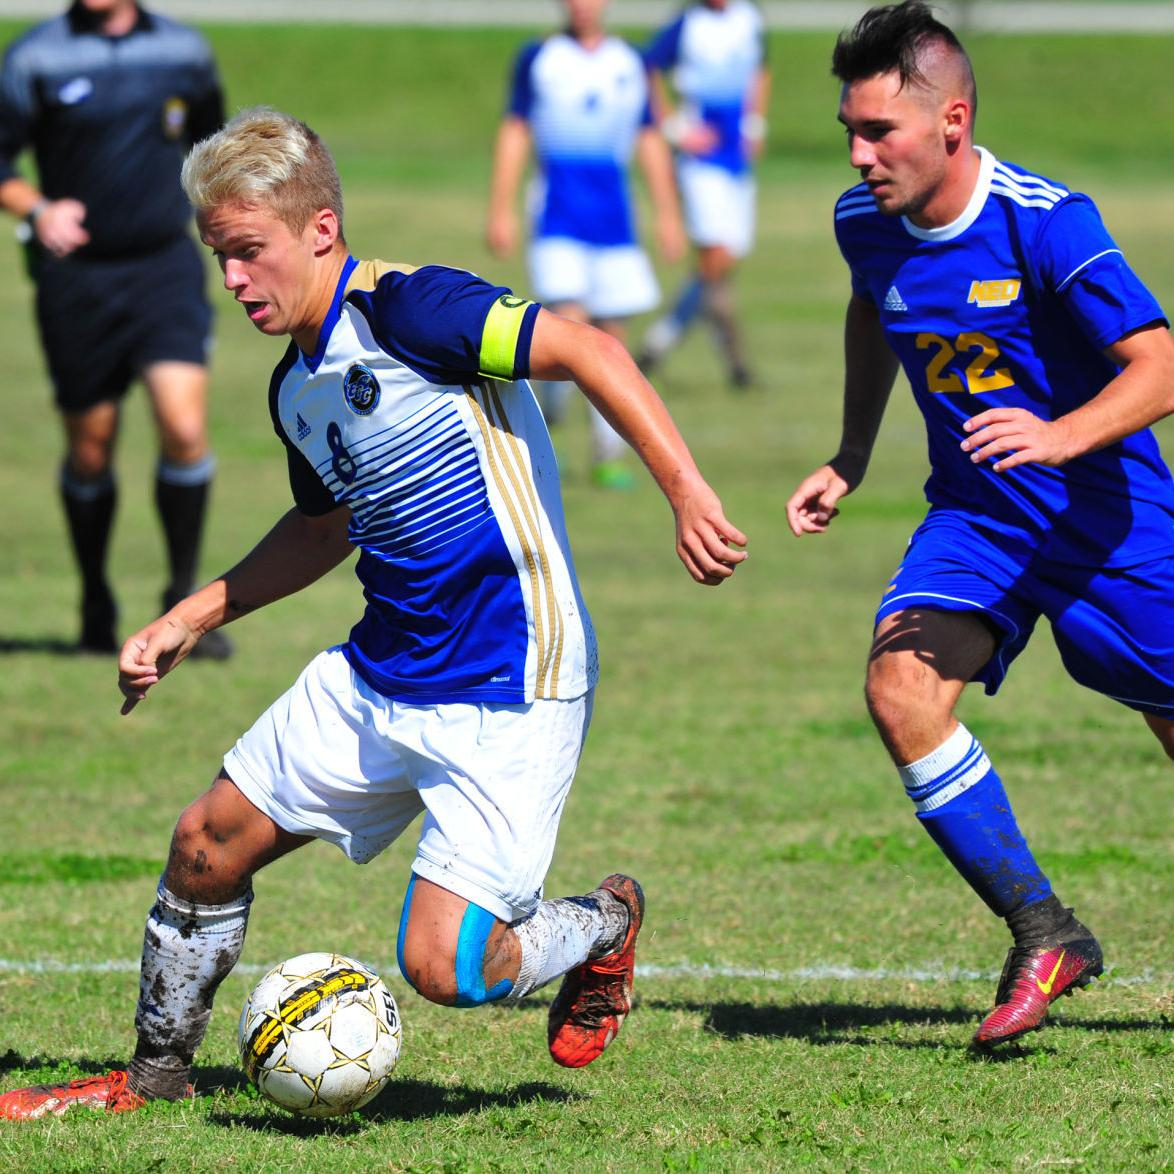 College Soccer — Northeastern Oklahoma A&M at East Central